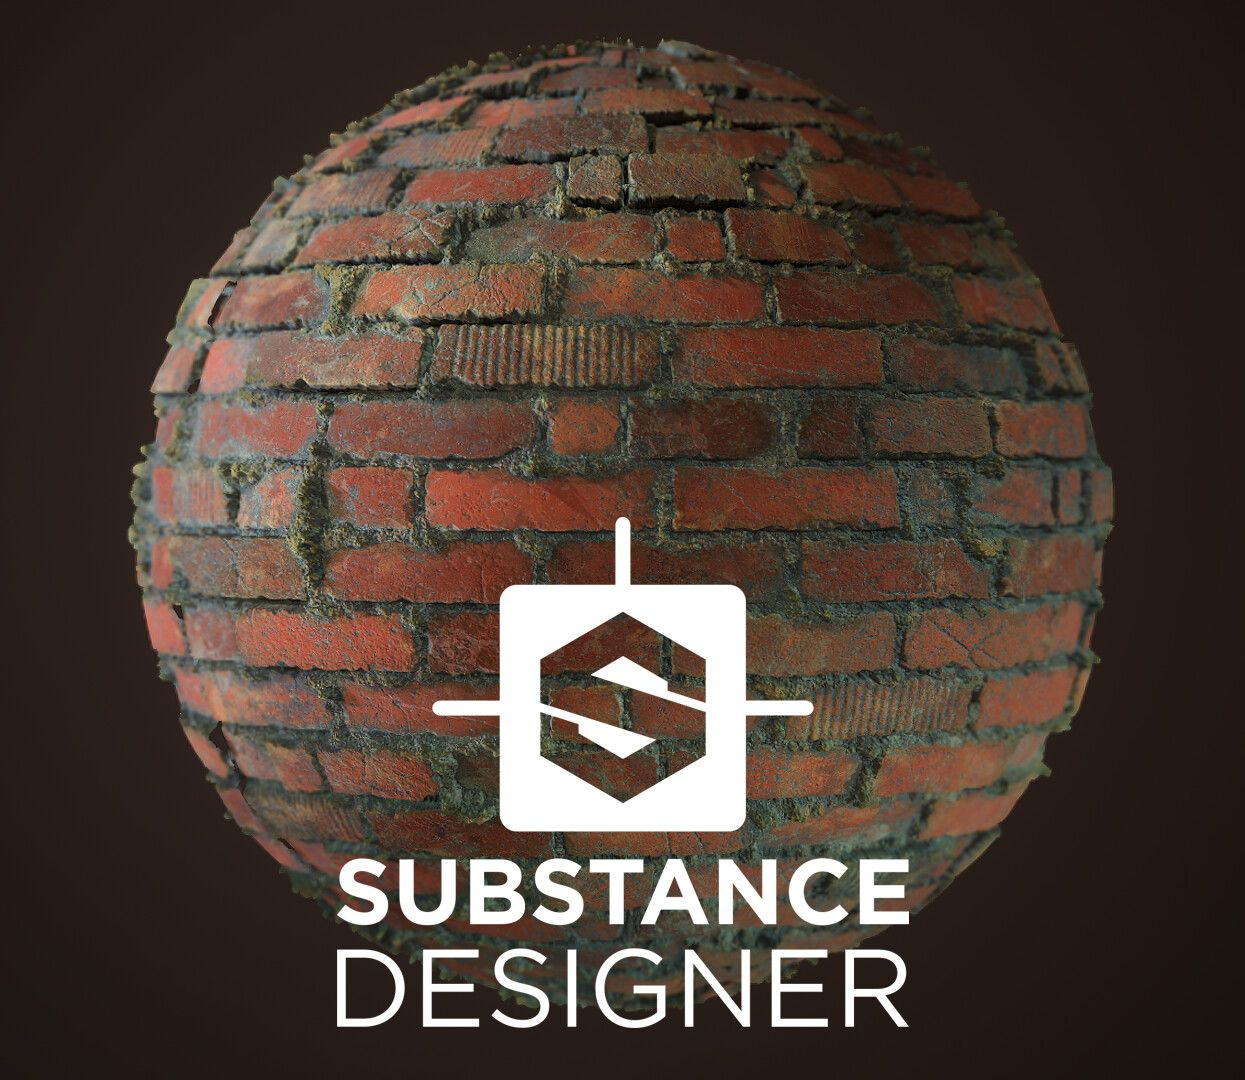 Old Bricks By Stas Rudenokeveryone Has Bricks And Here Is My Option 100 Substance Designer Thanks For Attention Old Bricks Brick Olds